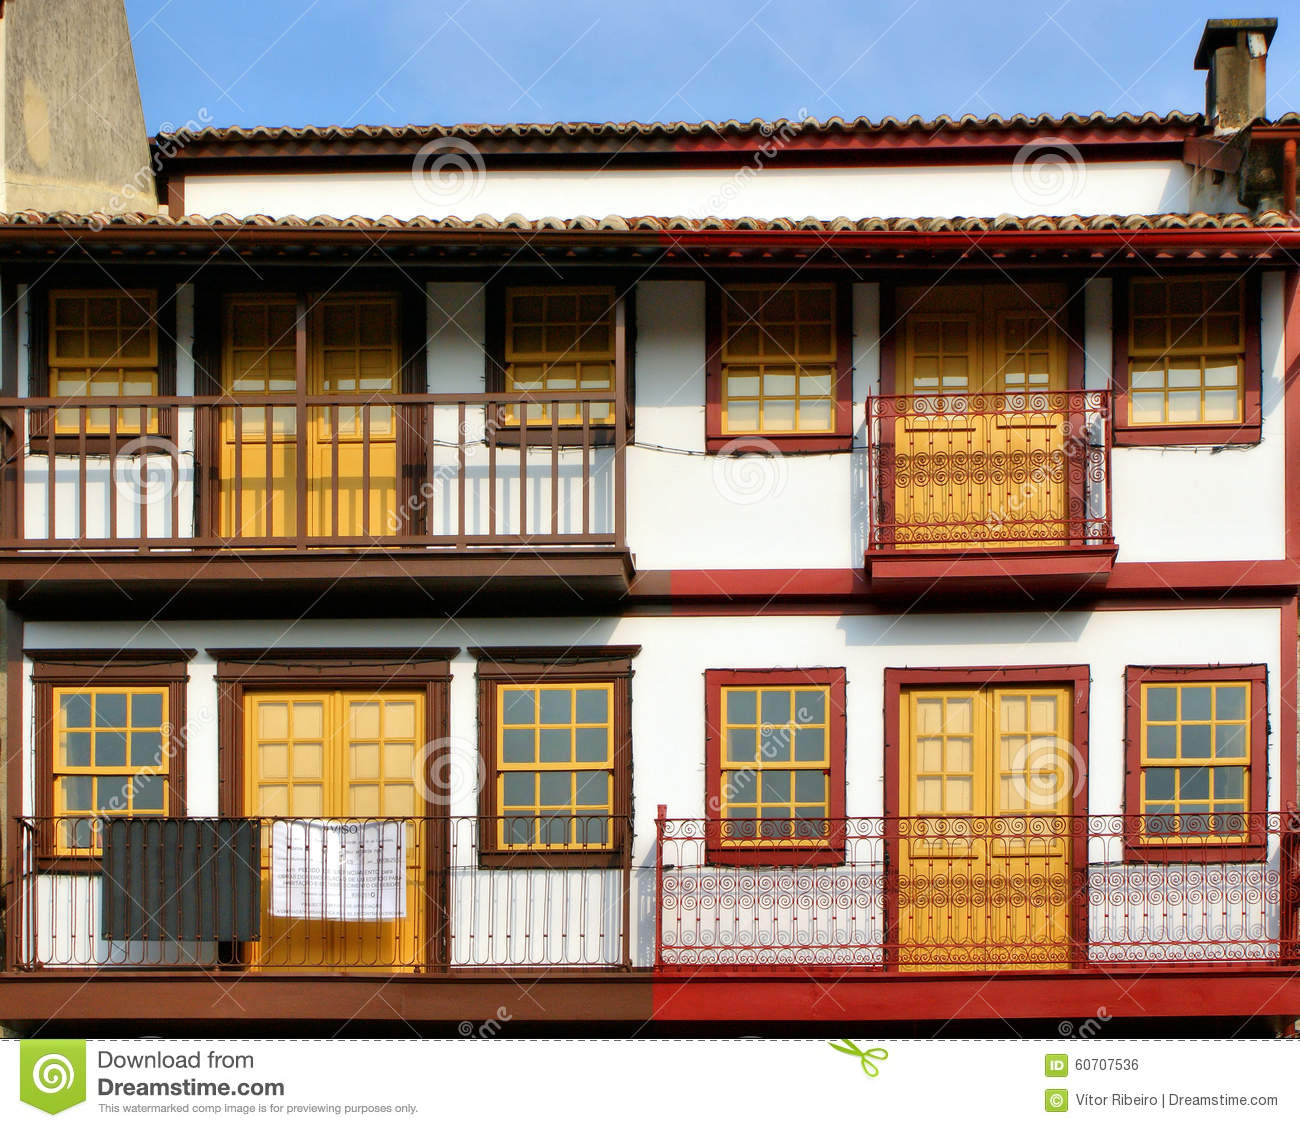 Medieval houses in the Historical Center of Guimaraes